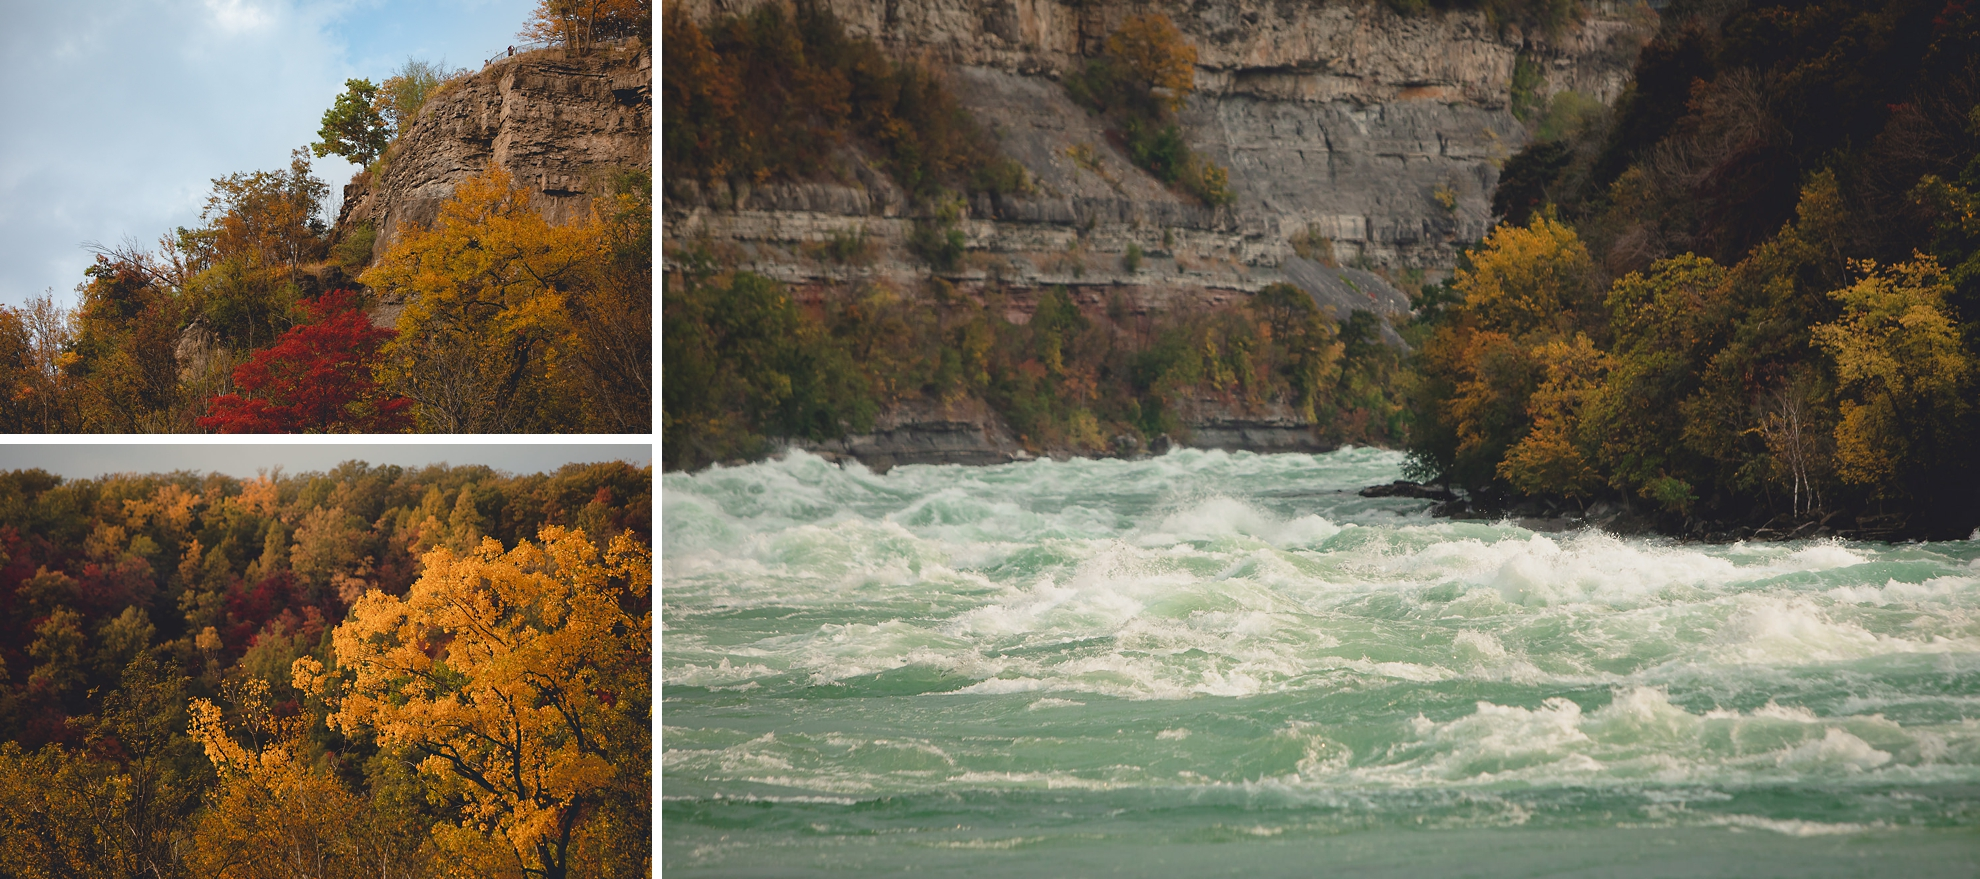 fall foliage and rapids in Whirlpool State Park in Niagara Falls, NY